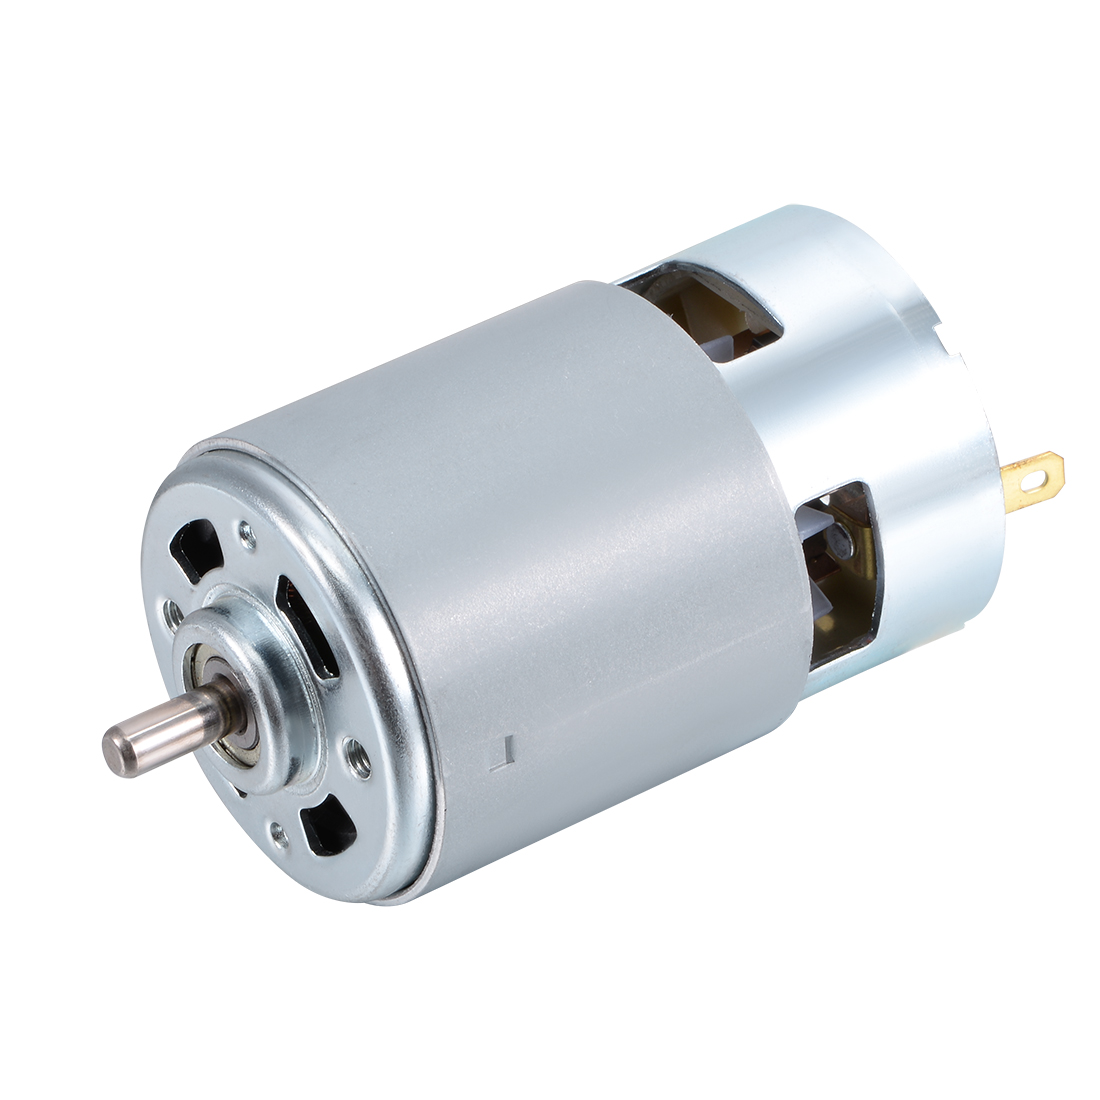 Micro Motor DC 24V 8300RPM 2 Wire High Torque High Speed Motor for DIY Toy Cars